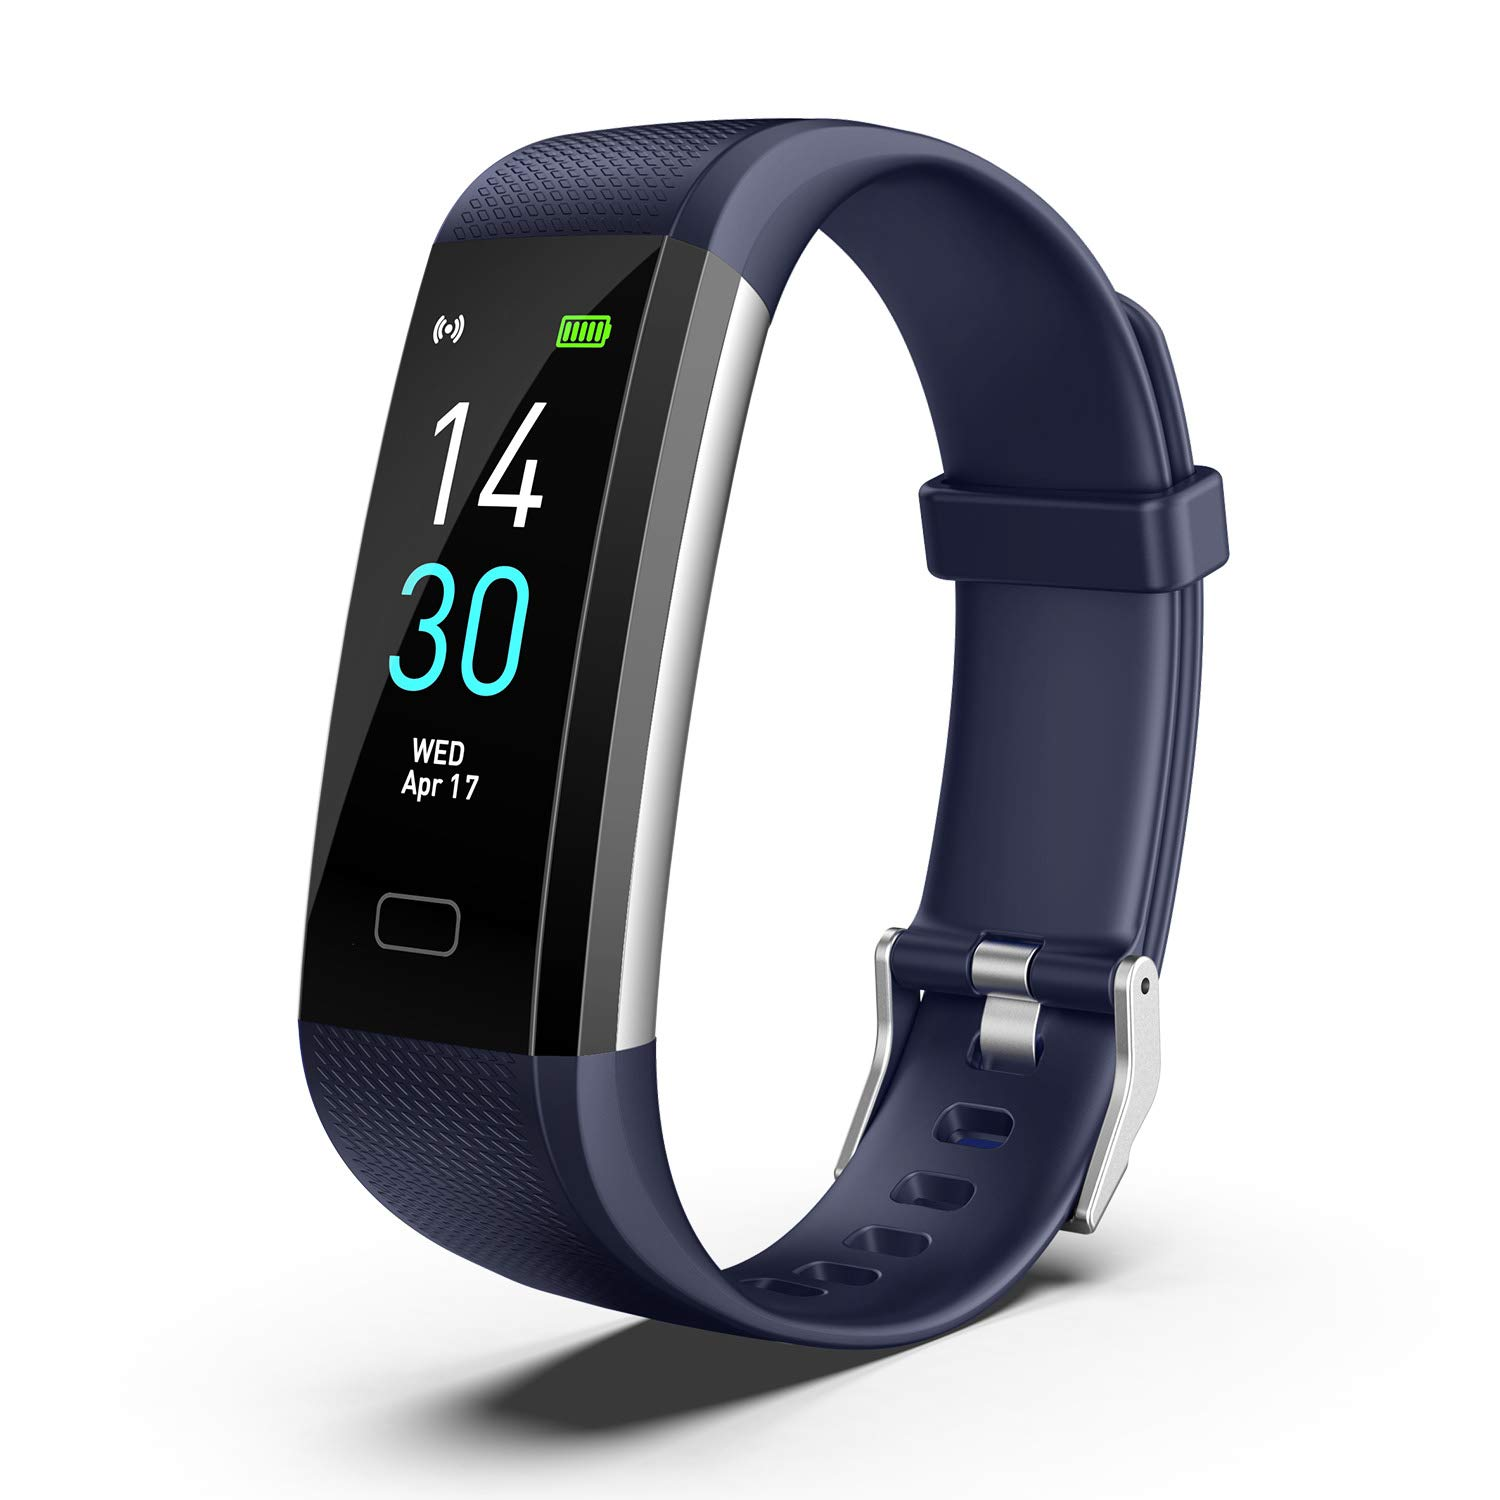 BUXAZ best fitness Activity Tracker band under 2000 Rs in India